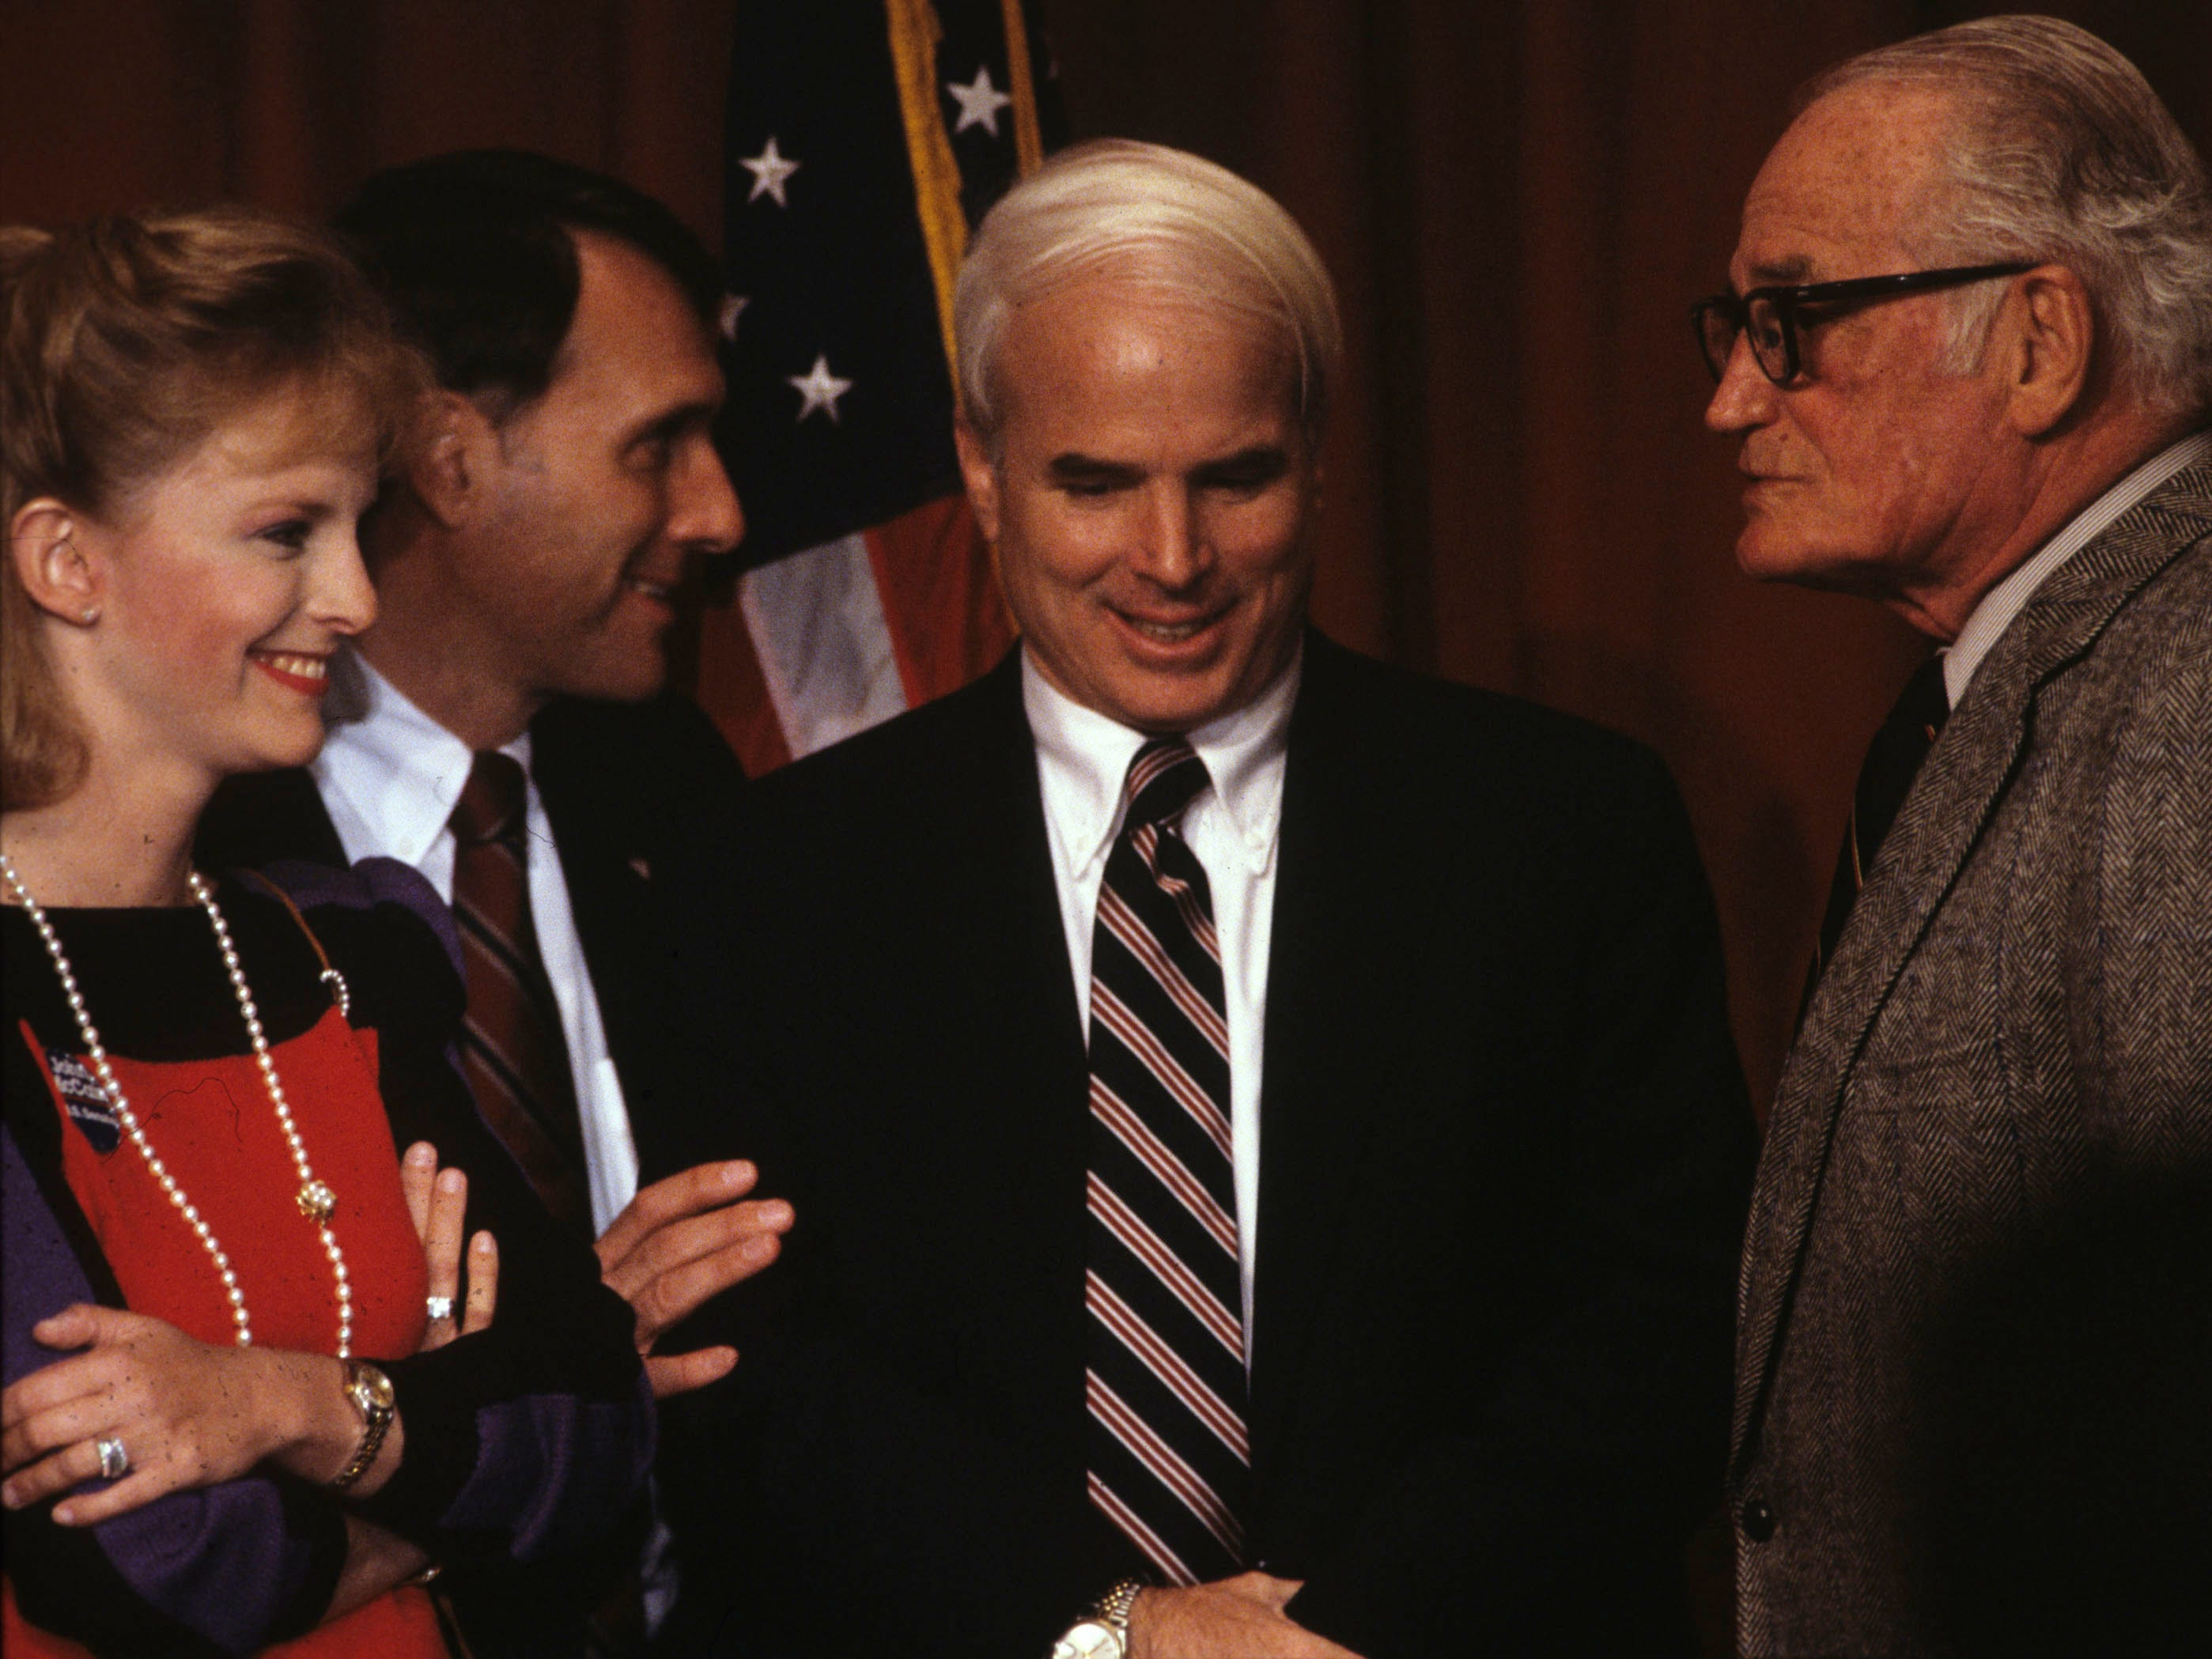 Arizona Congressional Representative John McCain, center talks with Arizona Senator Barry Goldwater, right and McCains wife Cindy at a 1988 fund raiser at the Arizona Biltmore Hotel. Left rear is Jon Kyl.